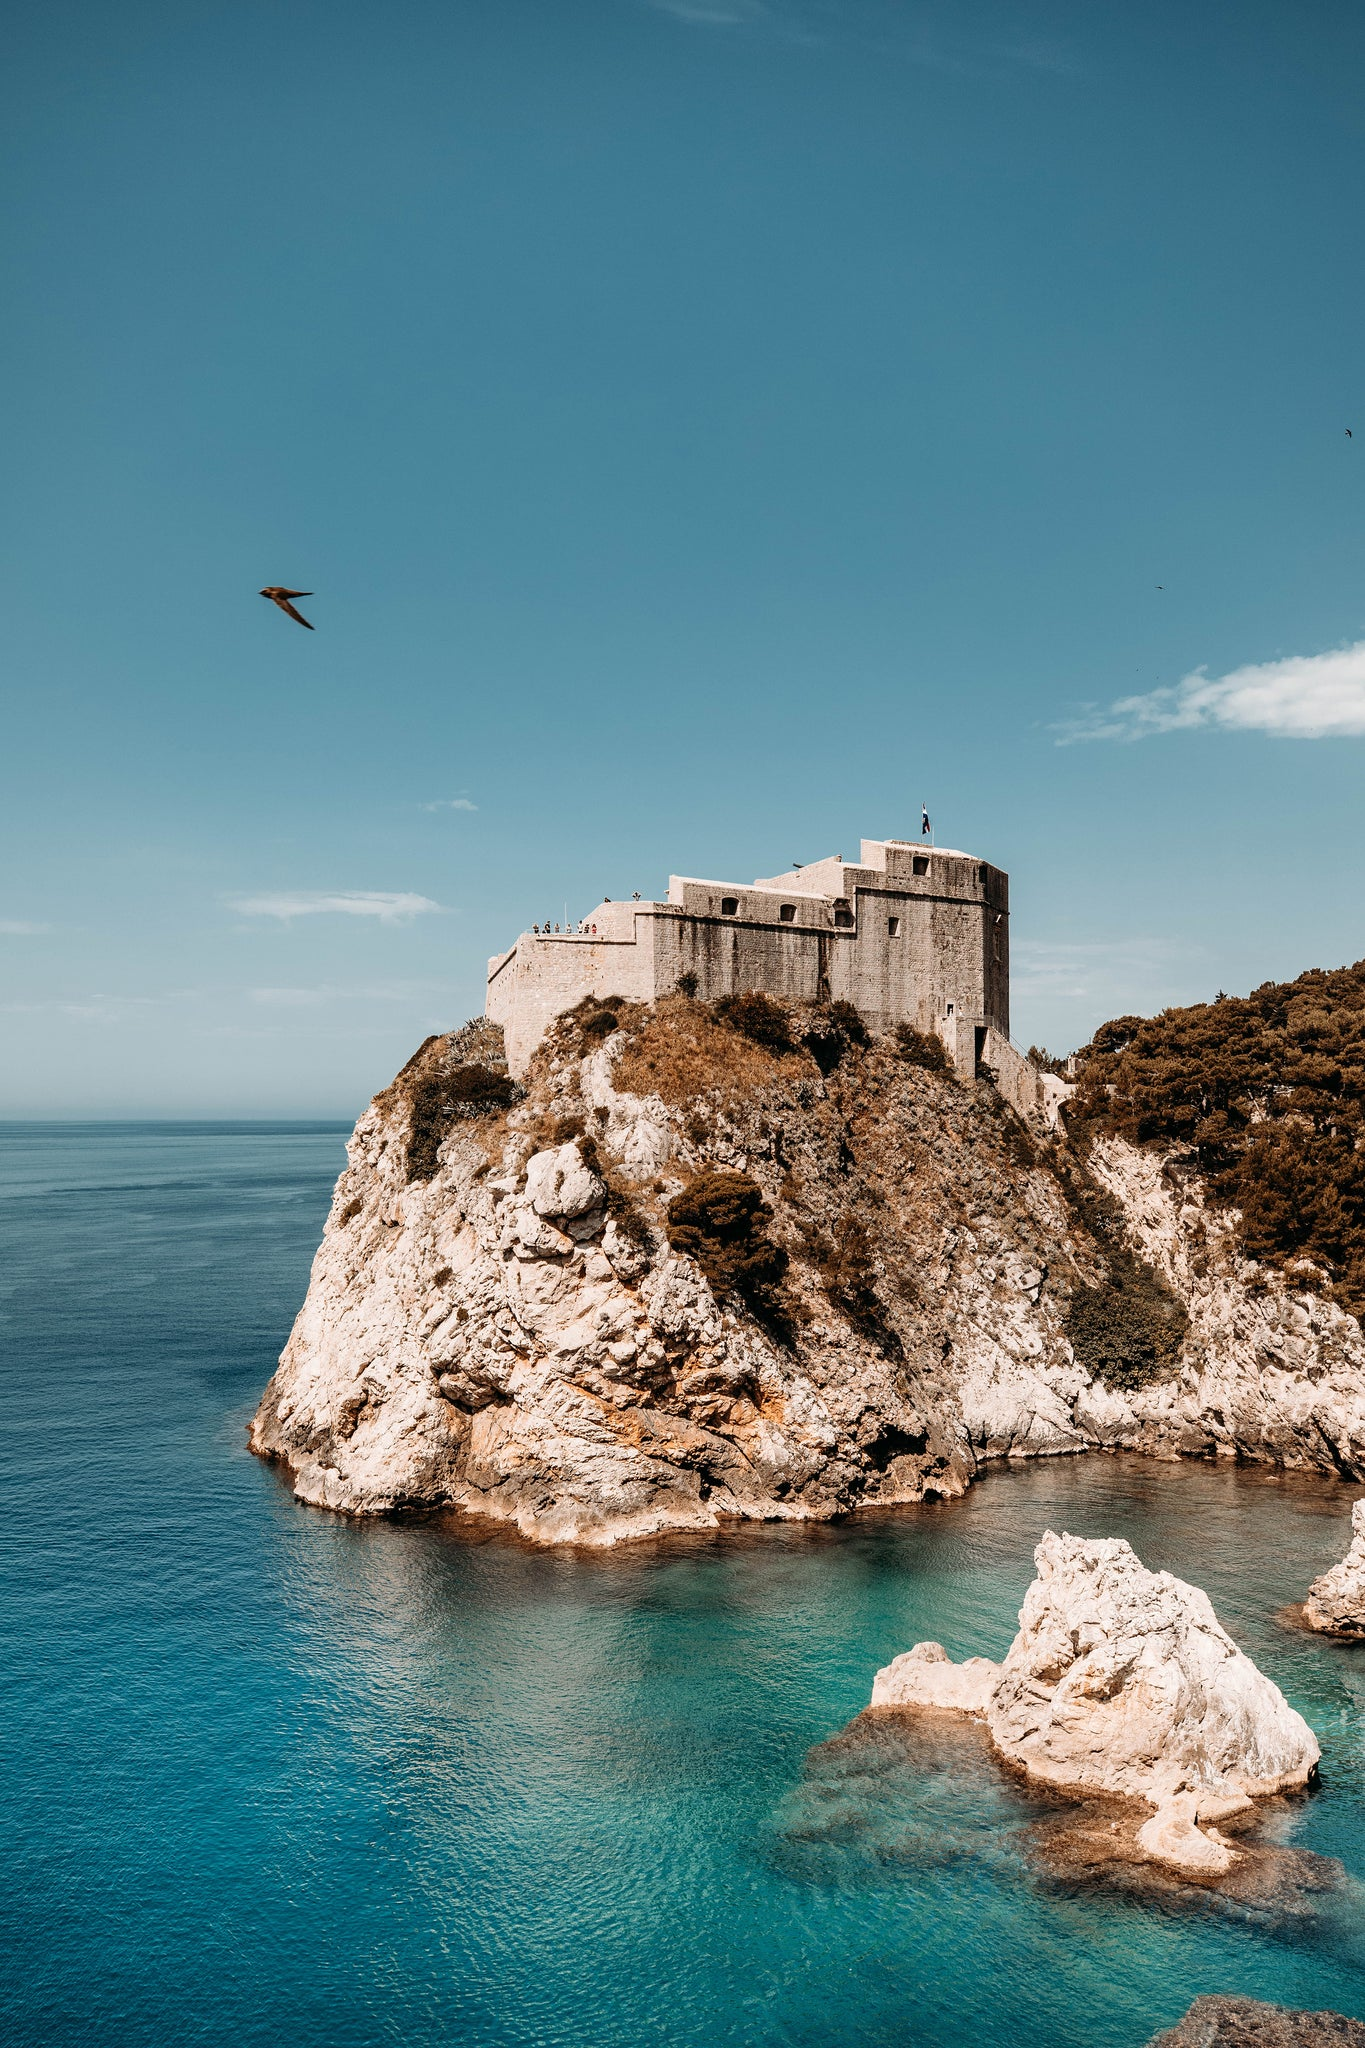 Blackwater kings landing game of thrones in Dubrovnik, Croatia